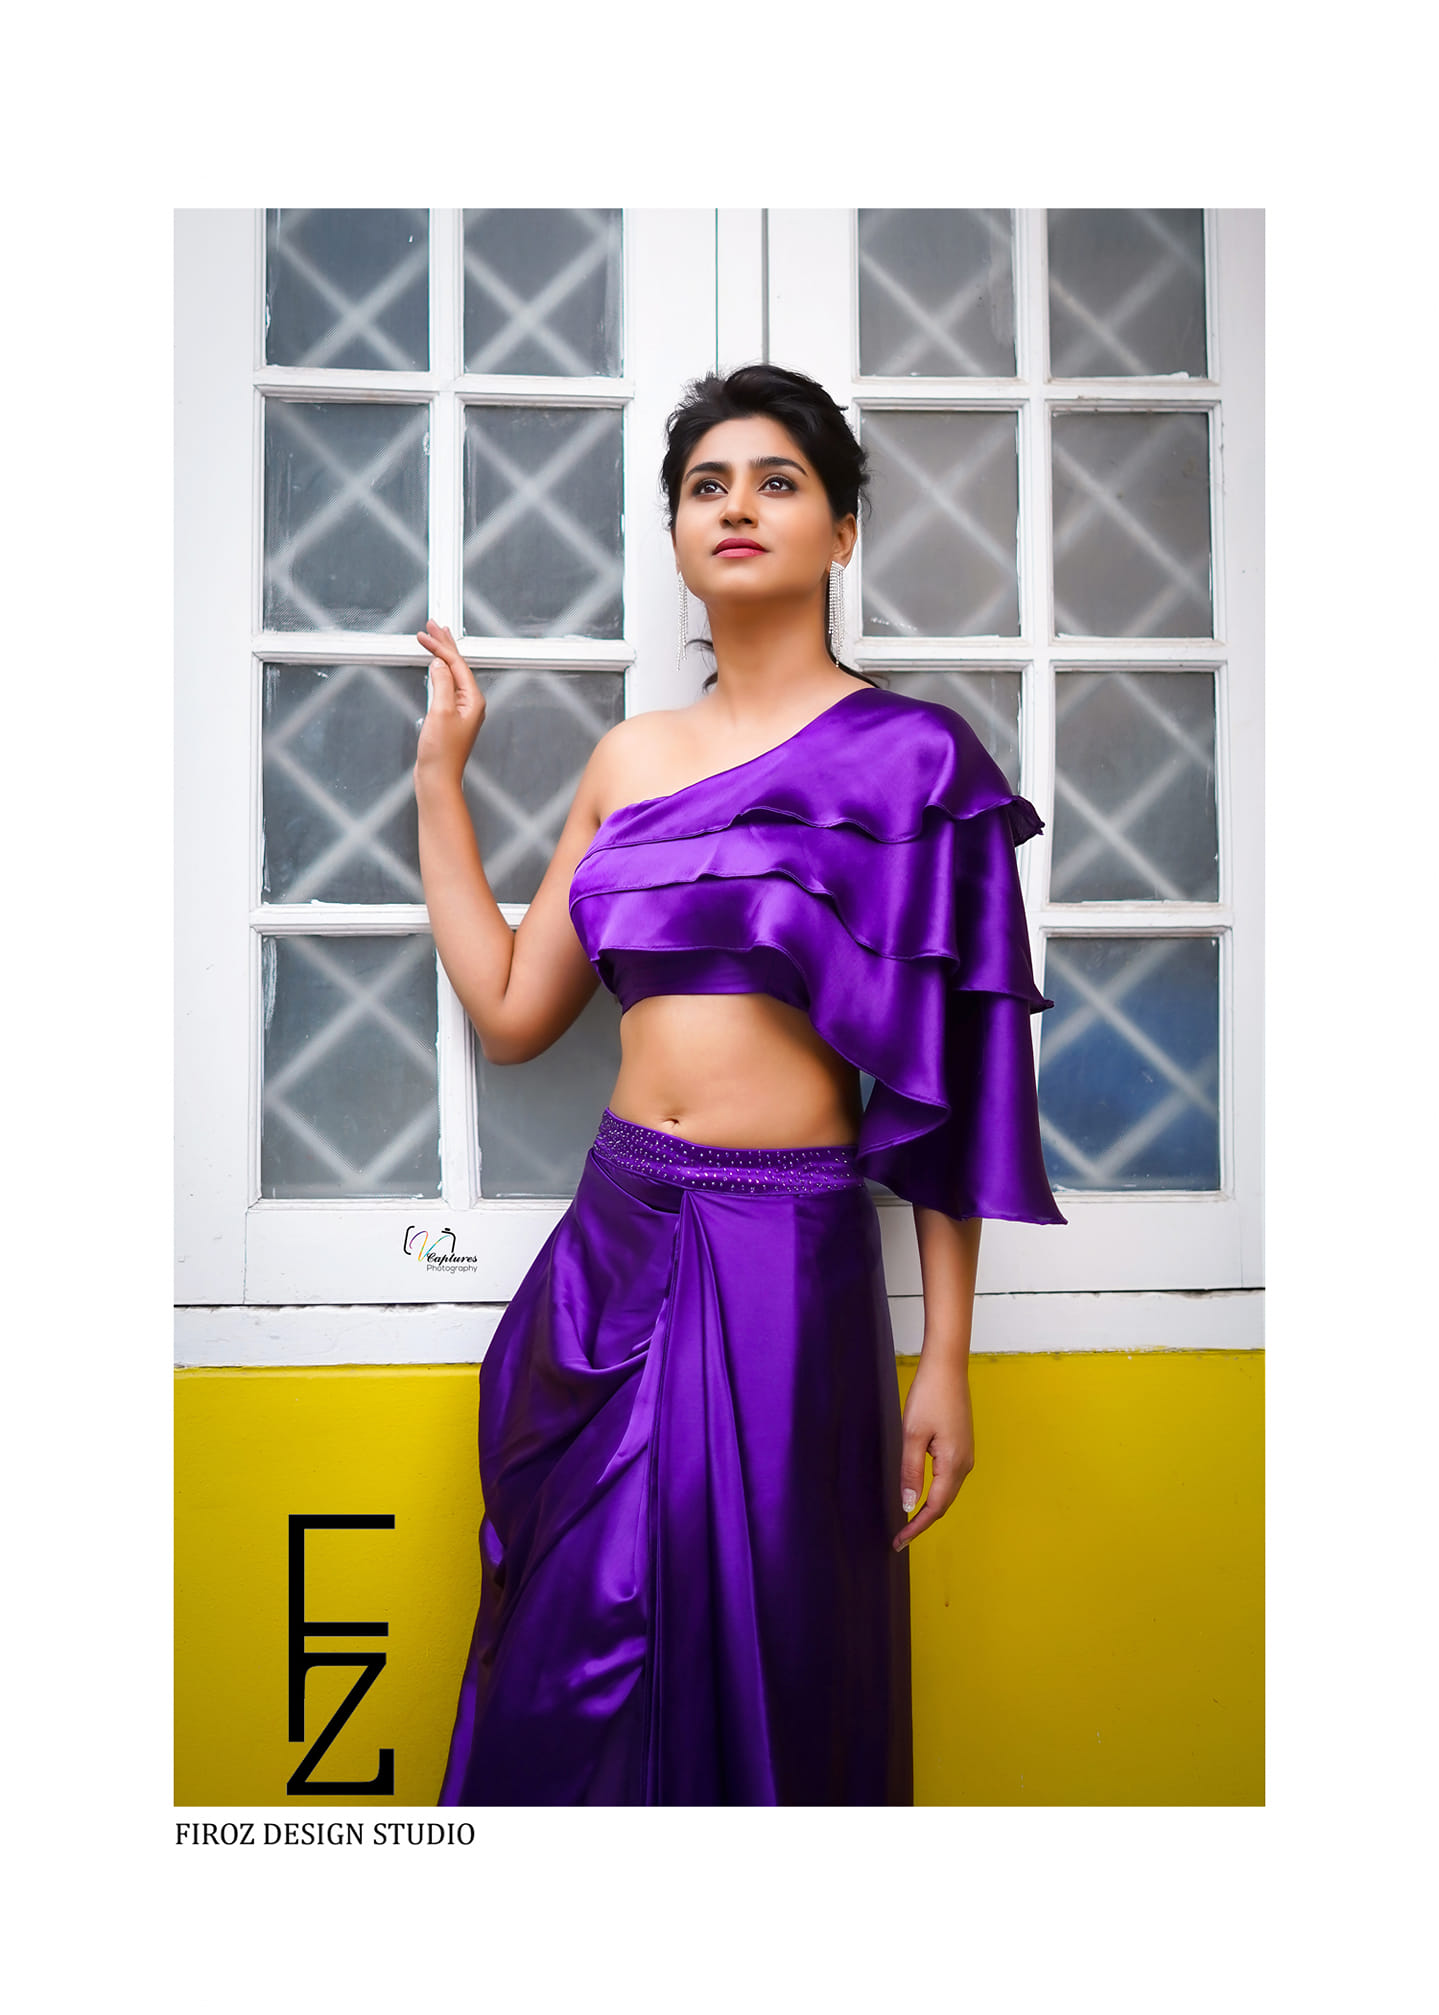 Glamorous Varshini looked beautiful in  Firoz Design Studio outfit.  They can customise the colour and size as per your requirements To contact  : 9505340228 / 9553480491/ 8142049755 2021-05-13